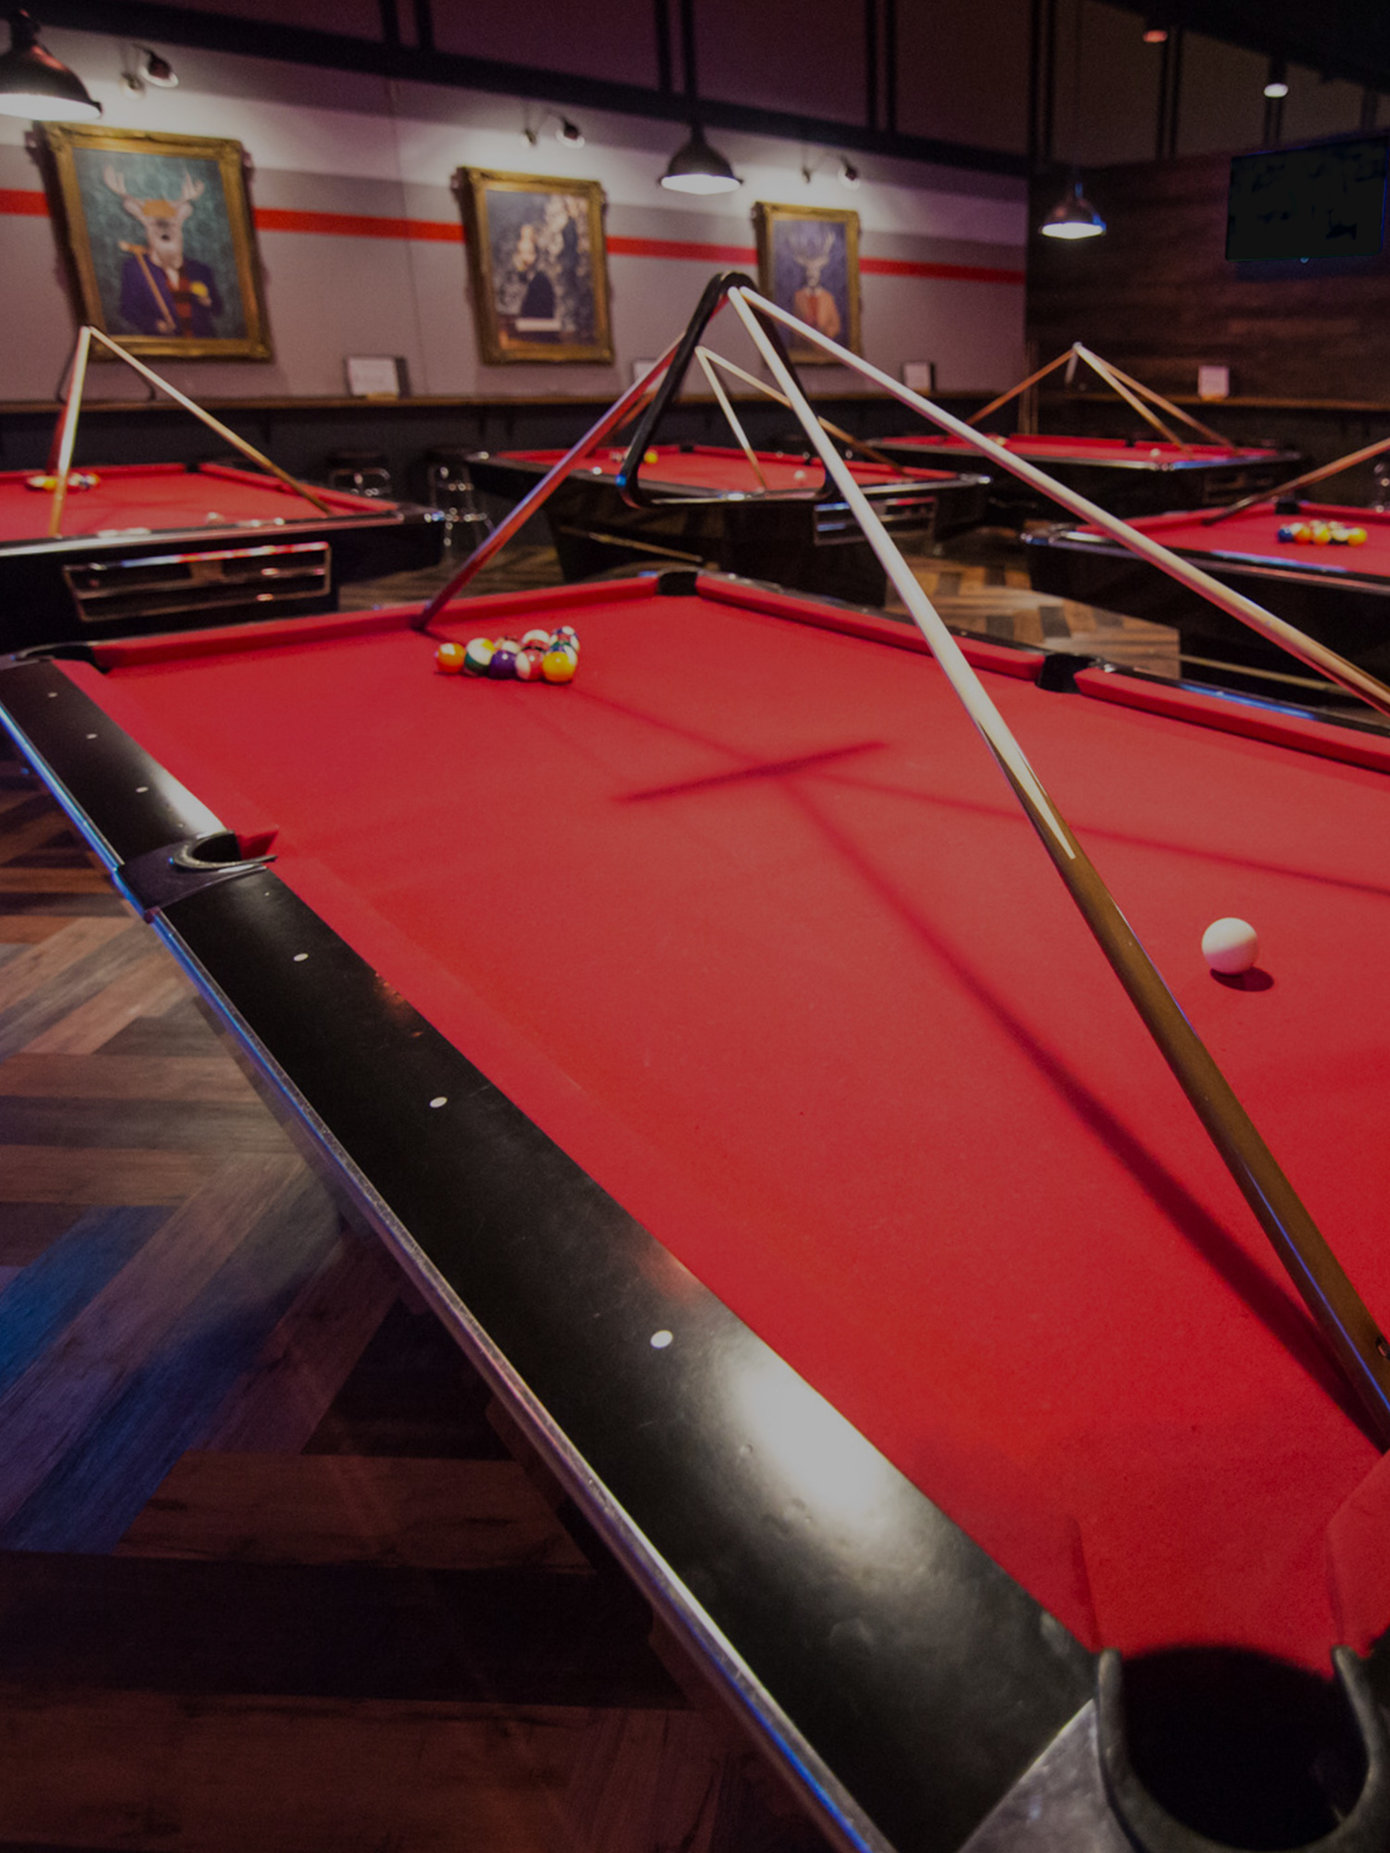 Red billiards tables